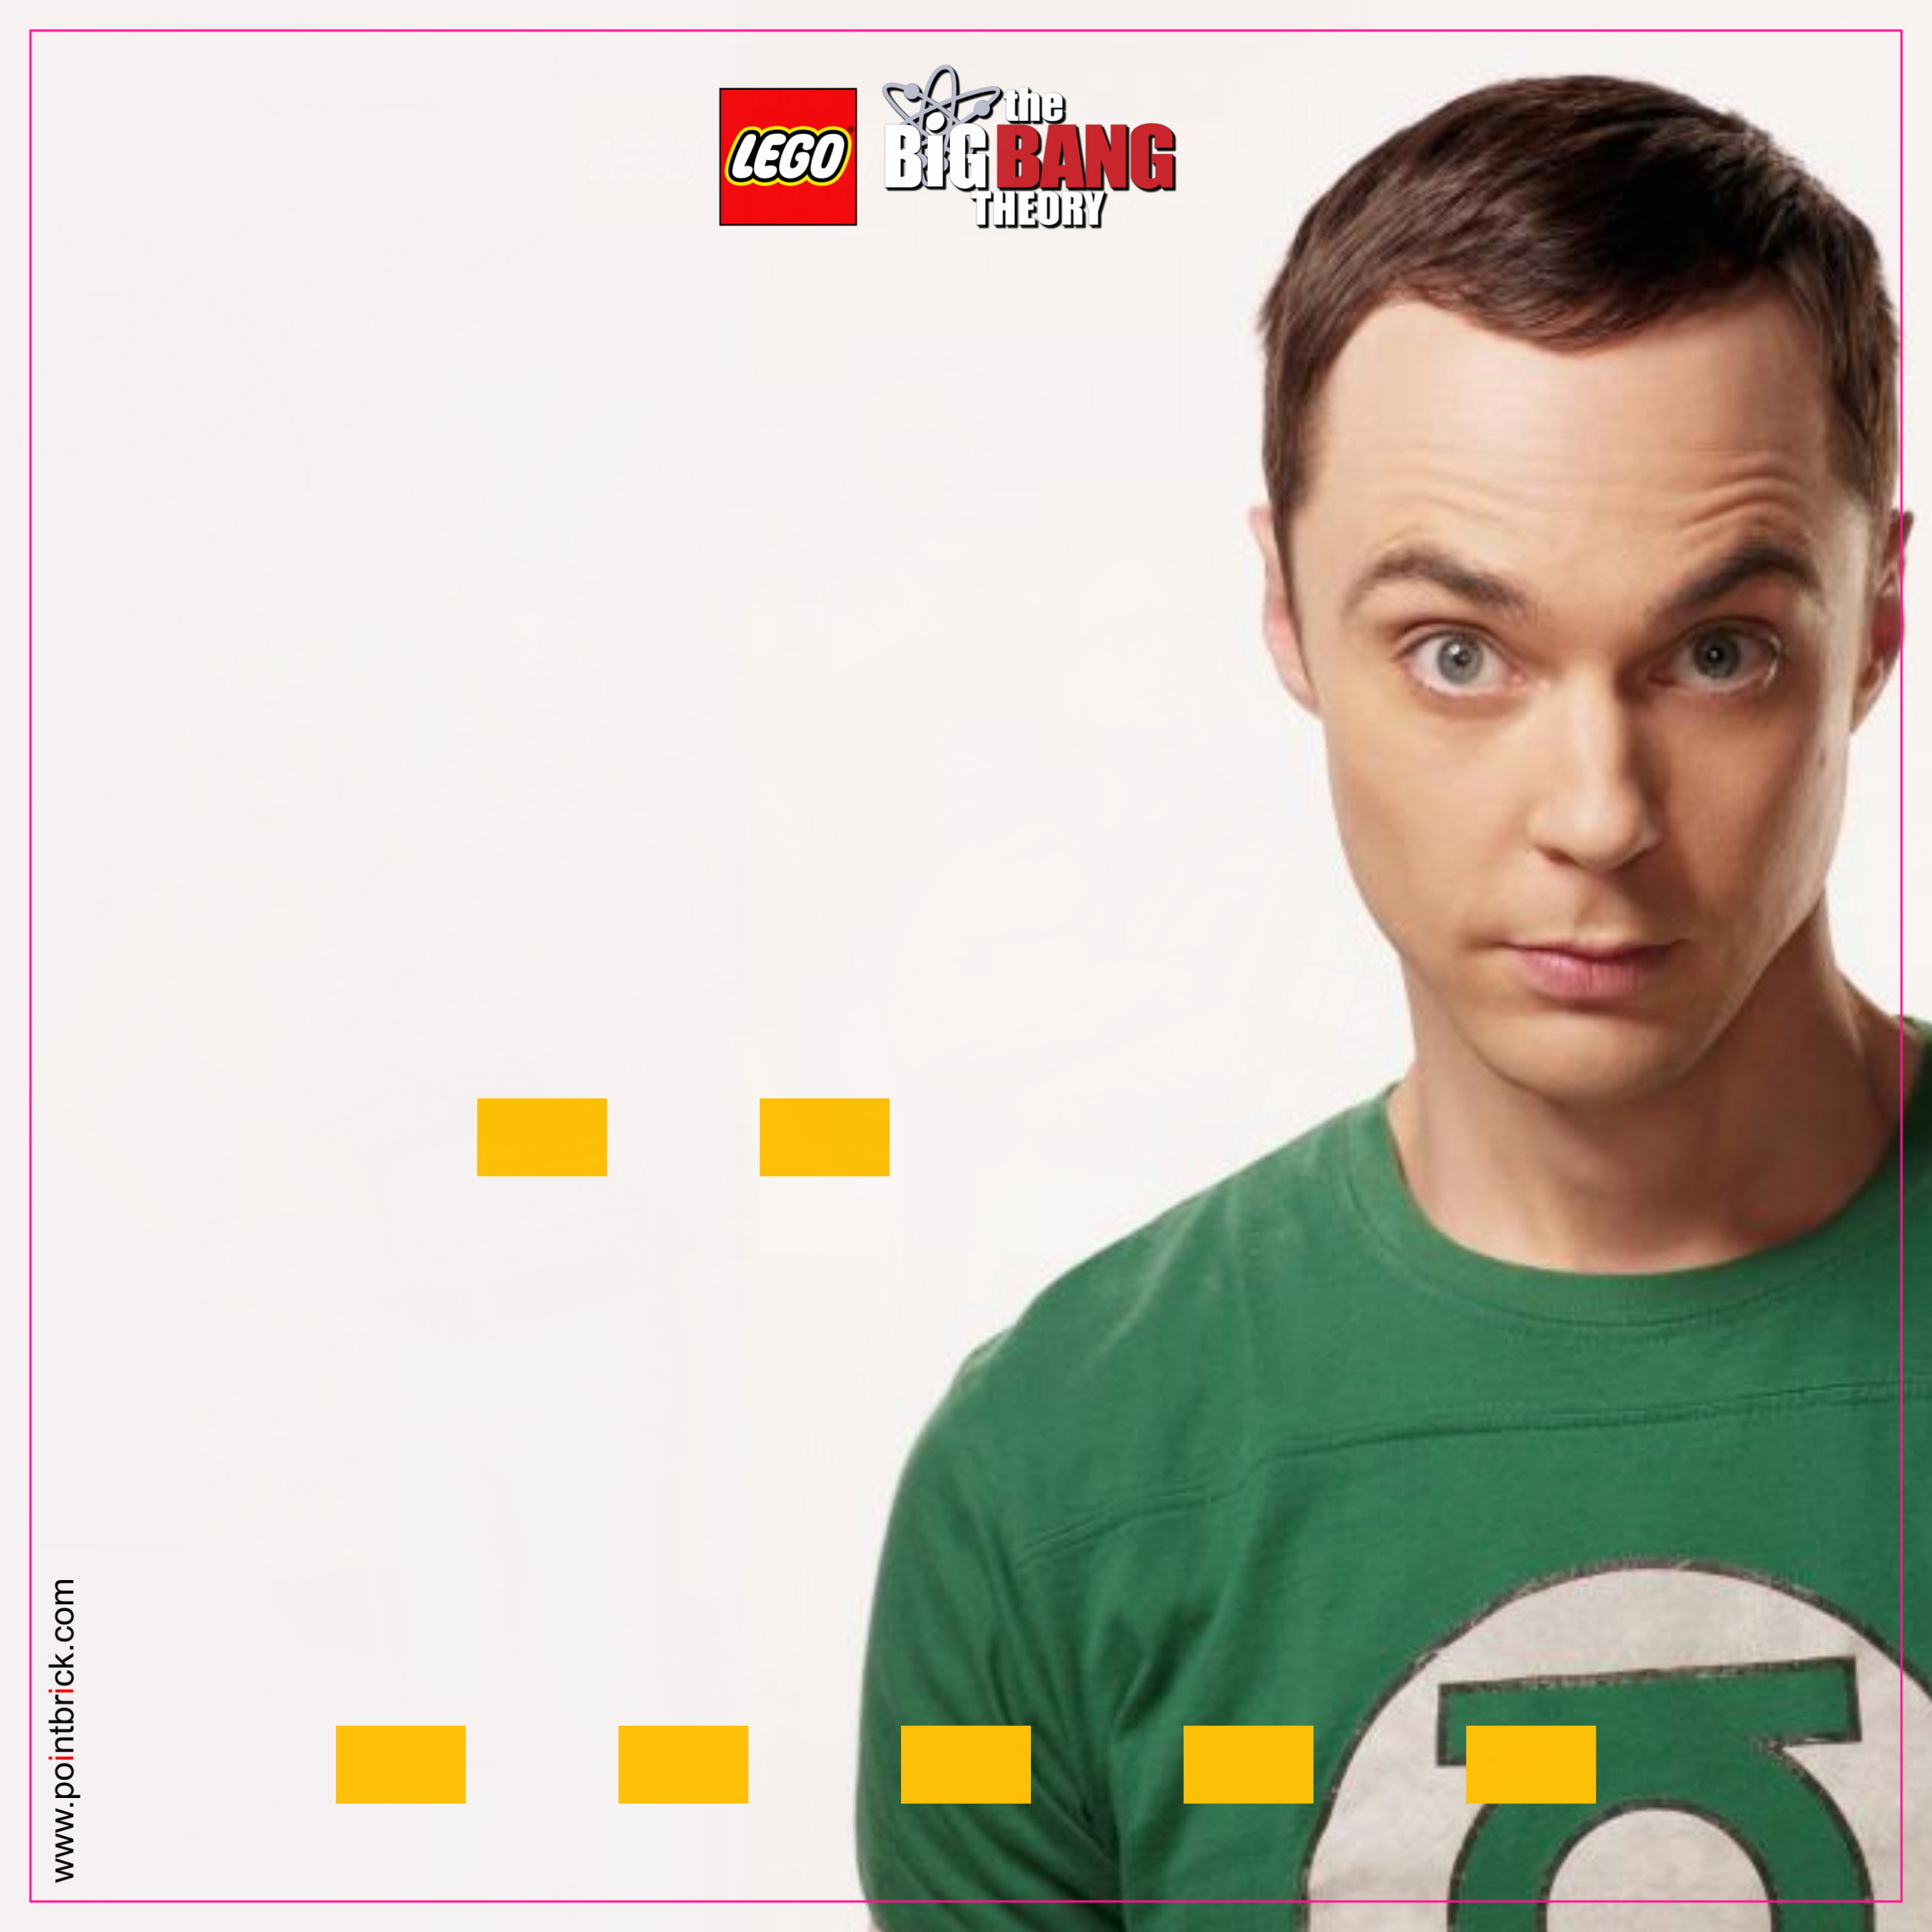 LEGO Minifigures Display Frame - Background 230mm The Big Bang Theory - Sheldon - Clicca sull'immagine per scaricarla gratuitamente!